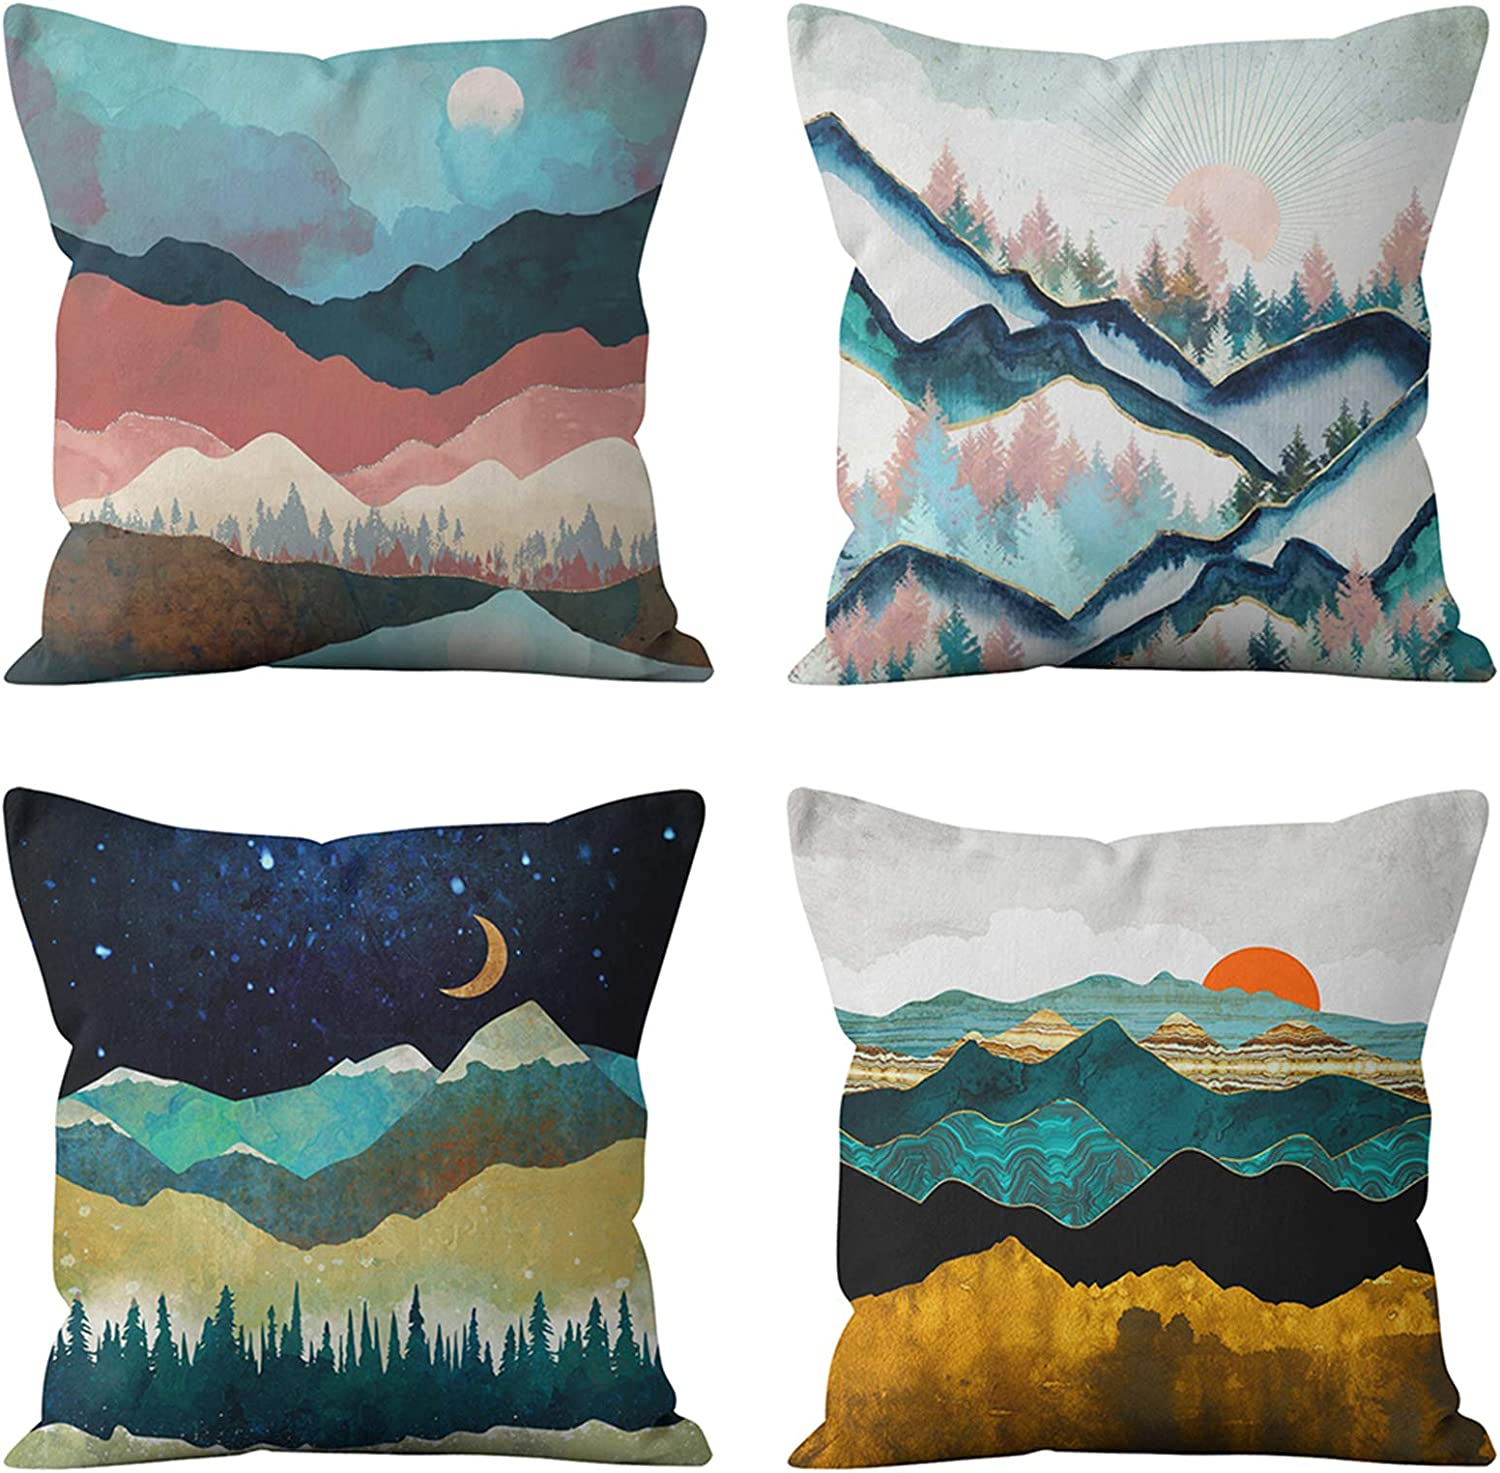 Heyhousenny Cartoon Landscape Mountains Decorative Watercolour Throw Pillow Covers Tree Bright Cushion Covers Square Outdoor Pillowcase For Sofa Set Of 4 Forest Sun Moon Home Kitchen Amazon Com